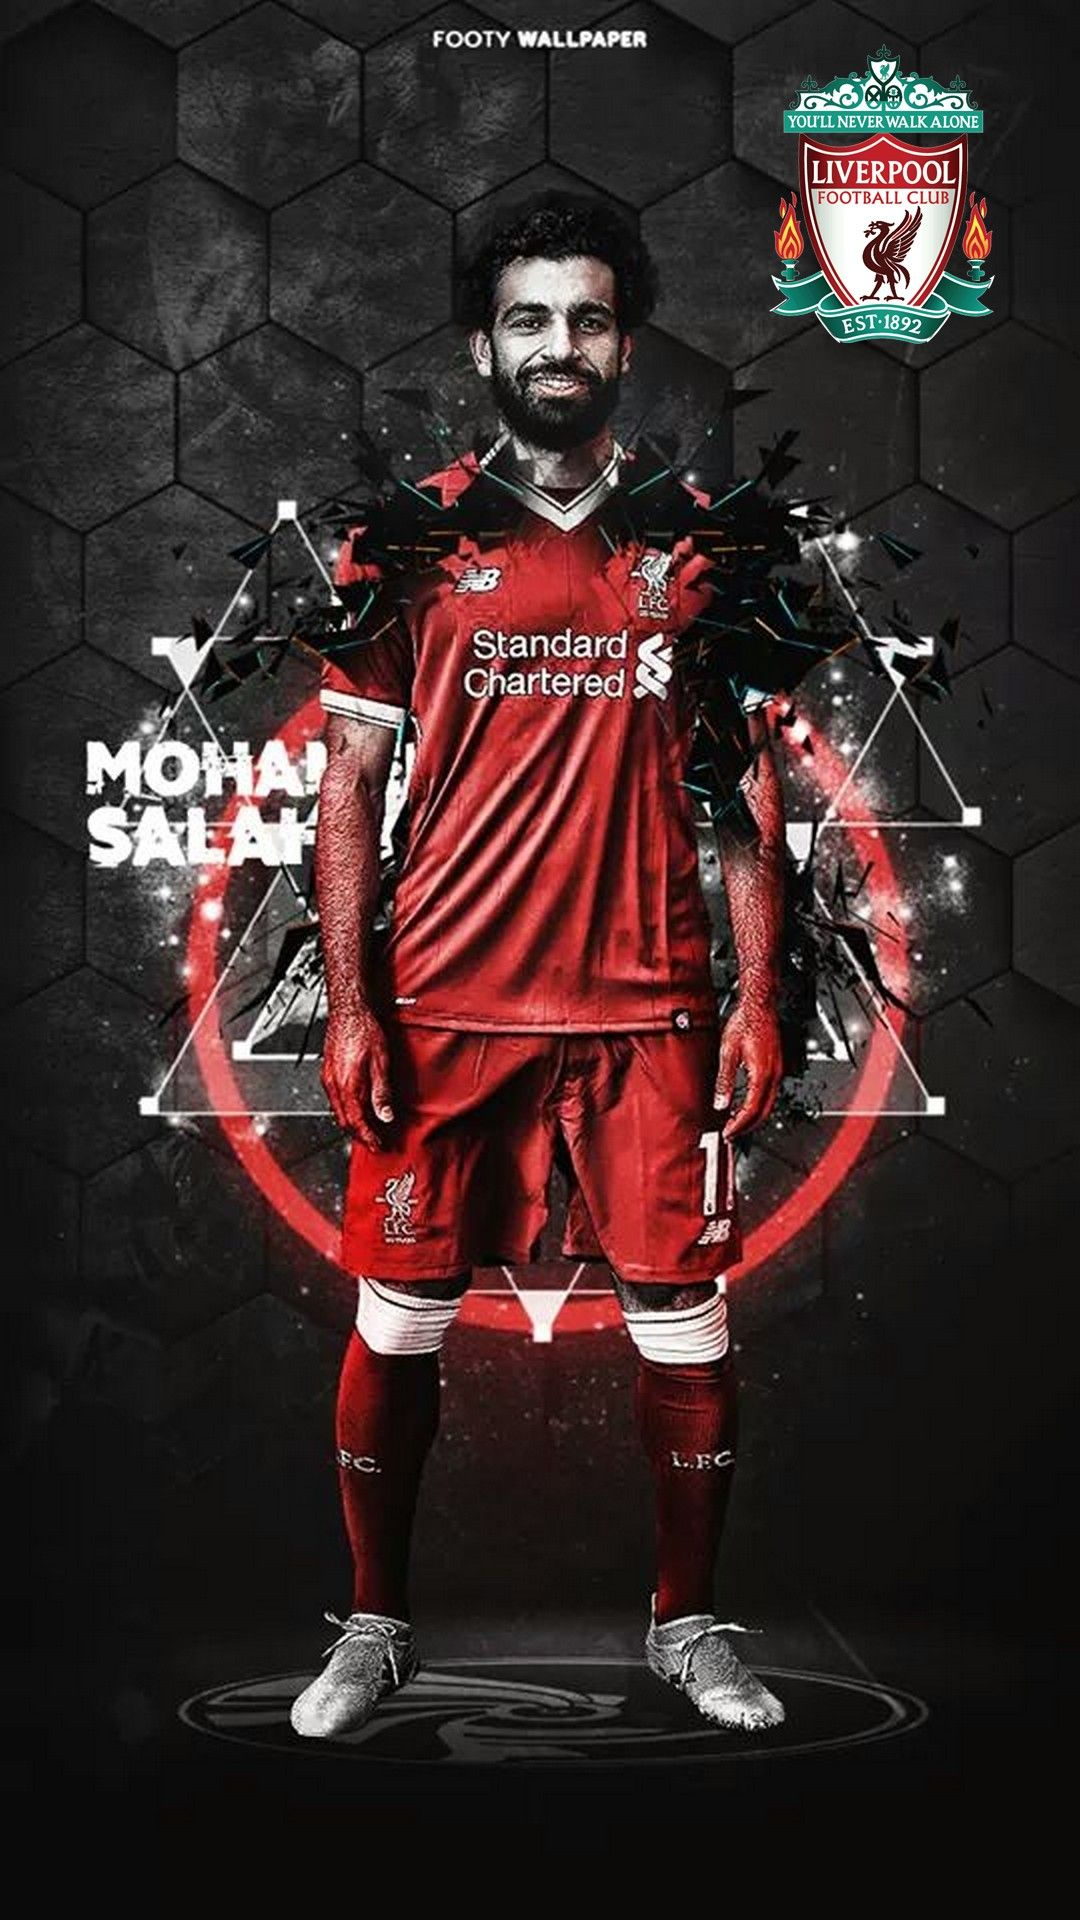 Pin by Ahmad Denkc on All About Liverpool Mohamed salah 1080x1920